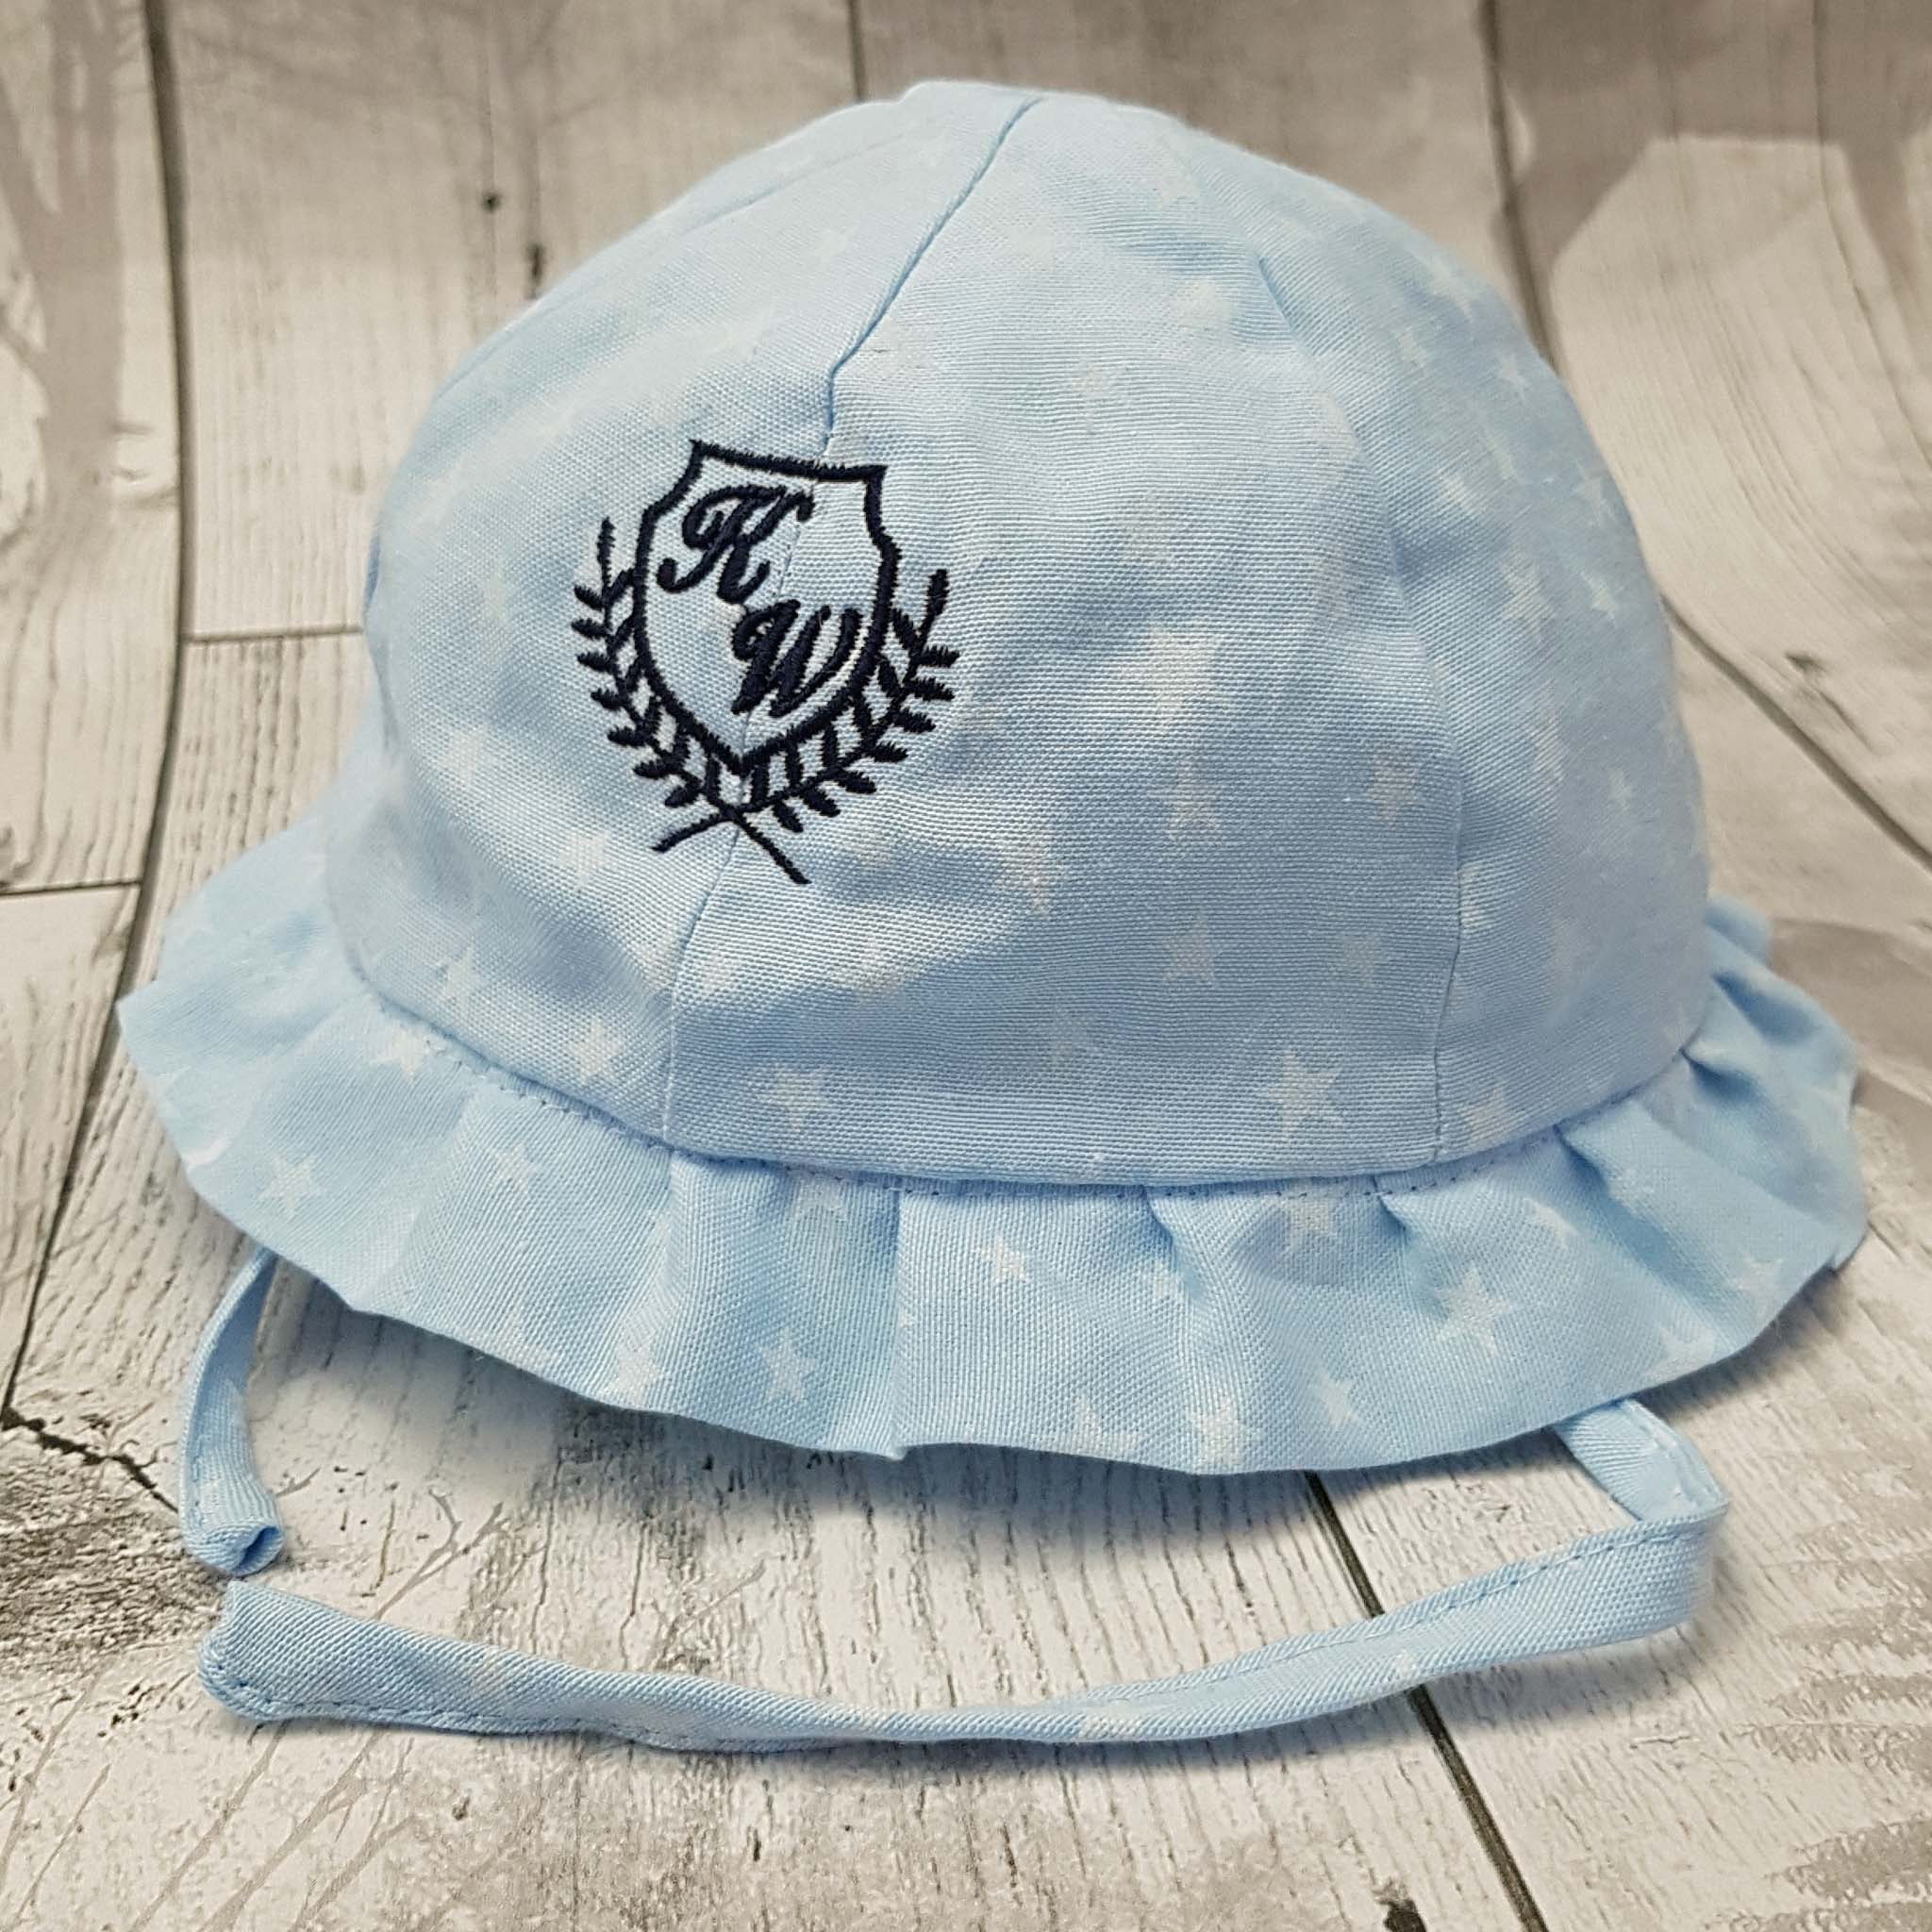 Personalised Baby Sun Hat - Blue